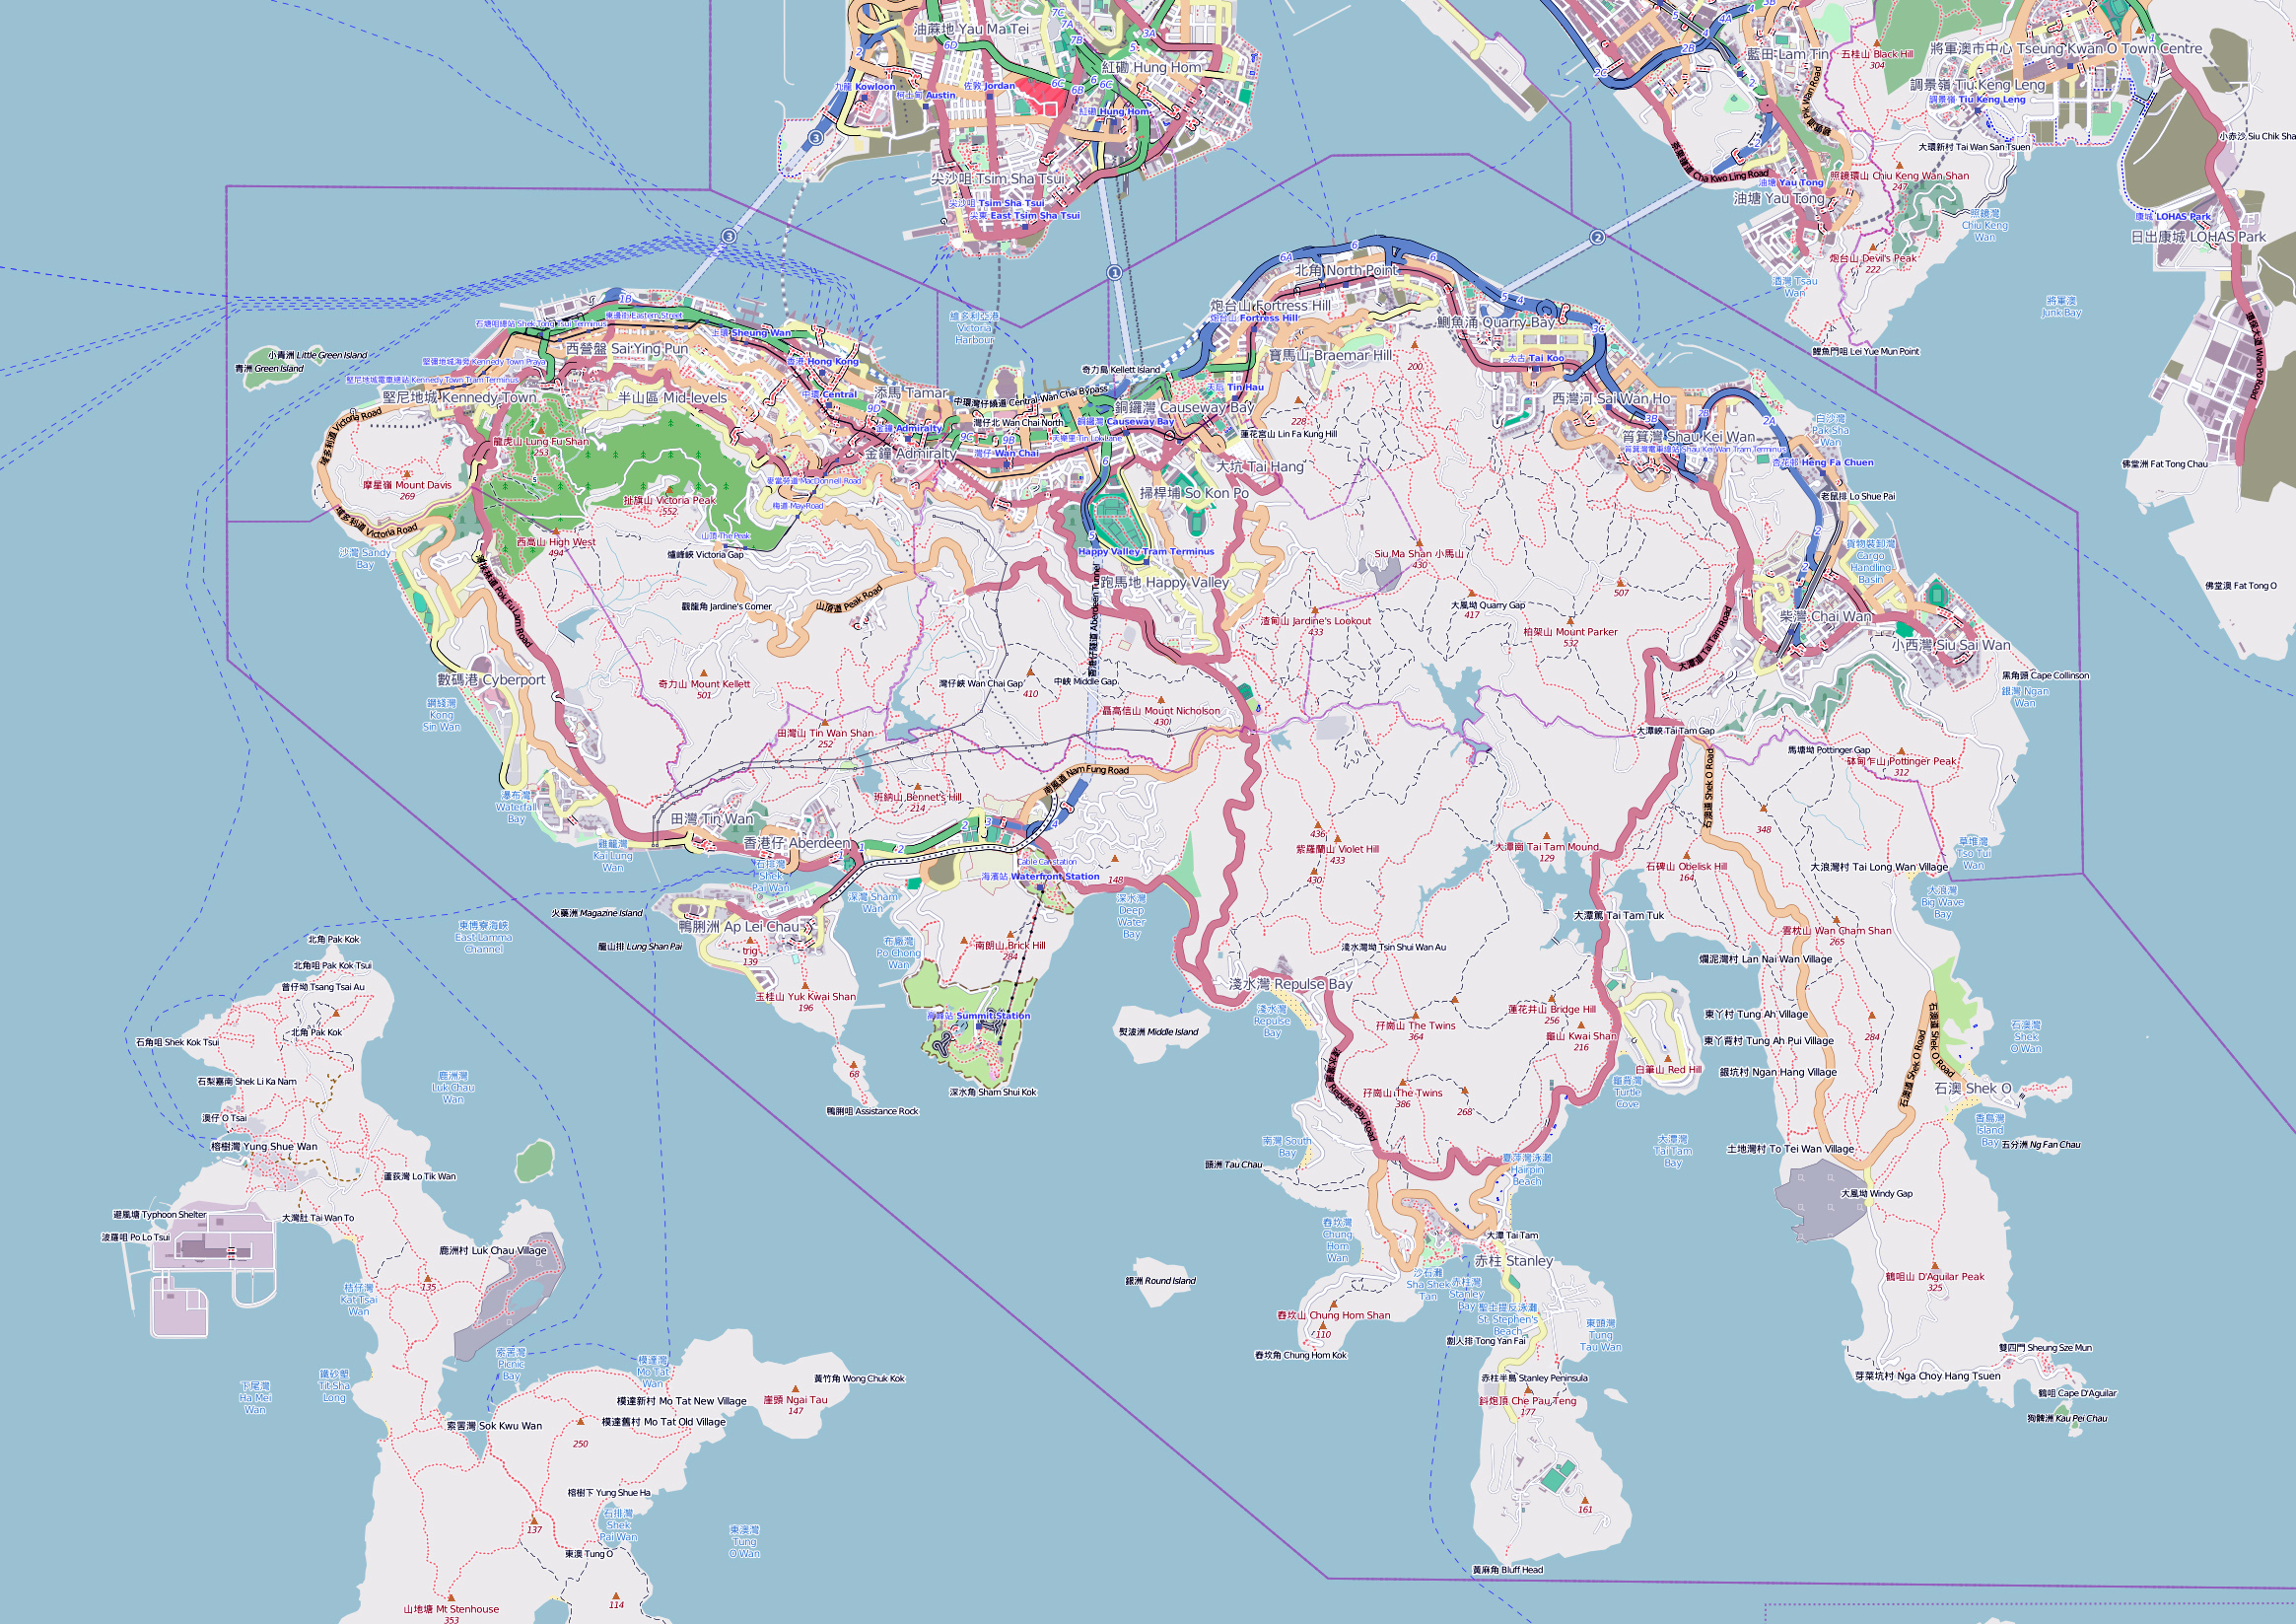 Maps of Hong Kong | Detailed map of Hong Kong in English | Tourist map of Hong Kong | Road map of Hong Kong and Guangzhou | Relief. Physical and ...